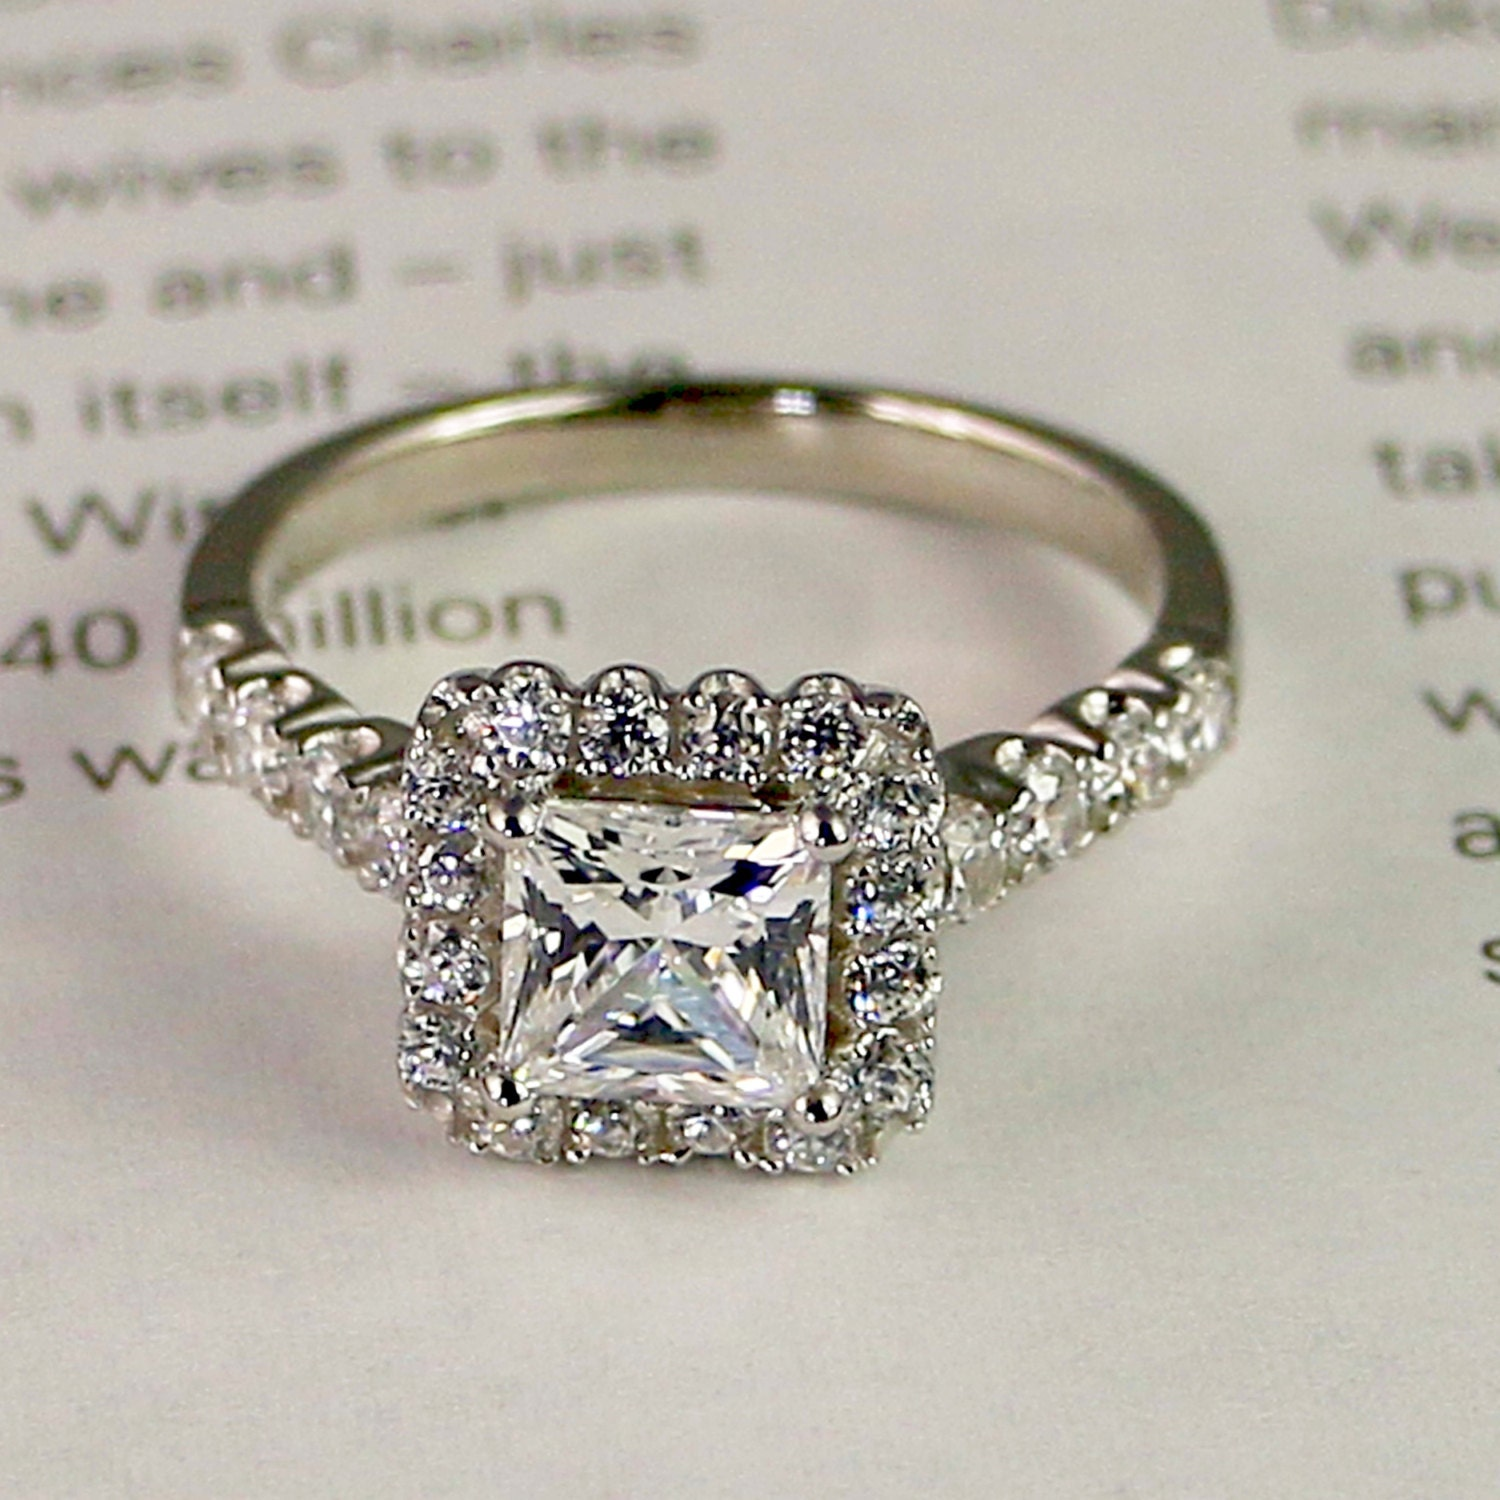 pin and center quad ring engagement stone rings wedding double halo